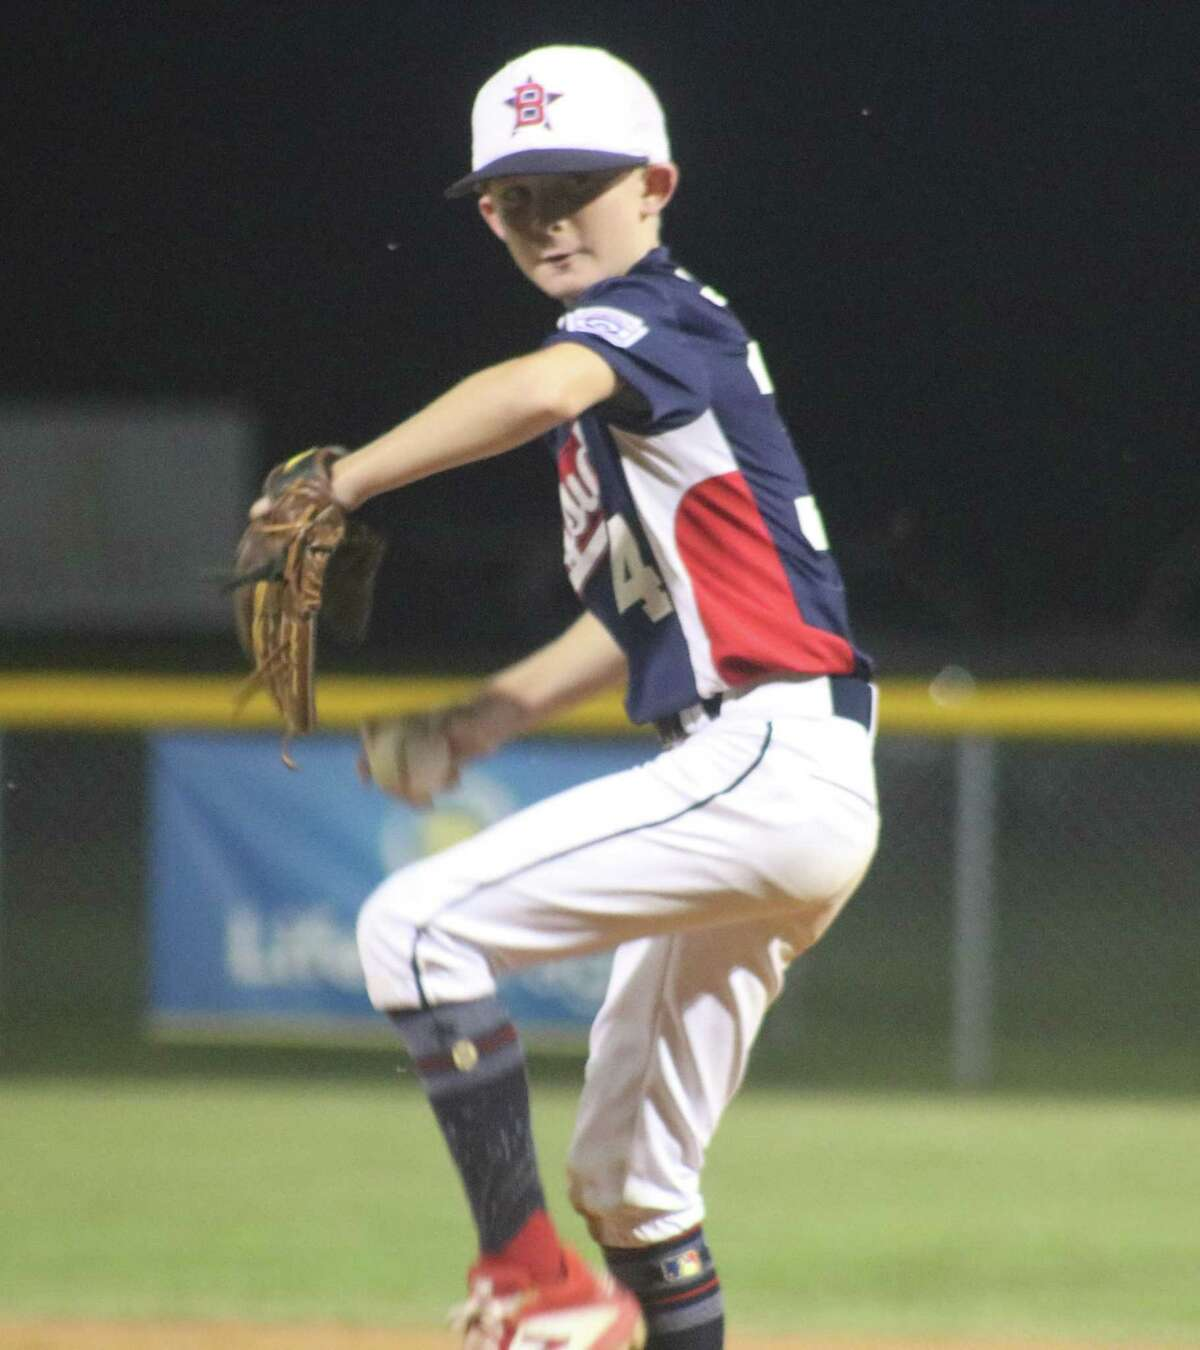 Bayside 10s starting pitcher Jason Cooper works on a batter in his final inning Friday night. Cooper received a no decision. He departed with the score 2-2. He scattered five hits, but two hit batters in the second inning forced in a tying run.